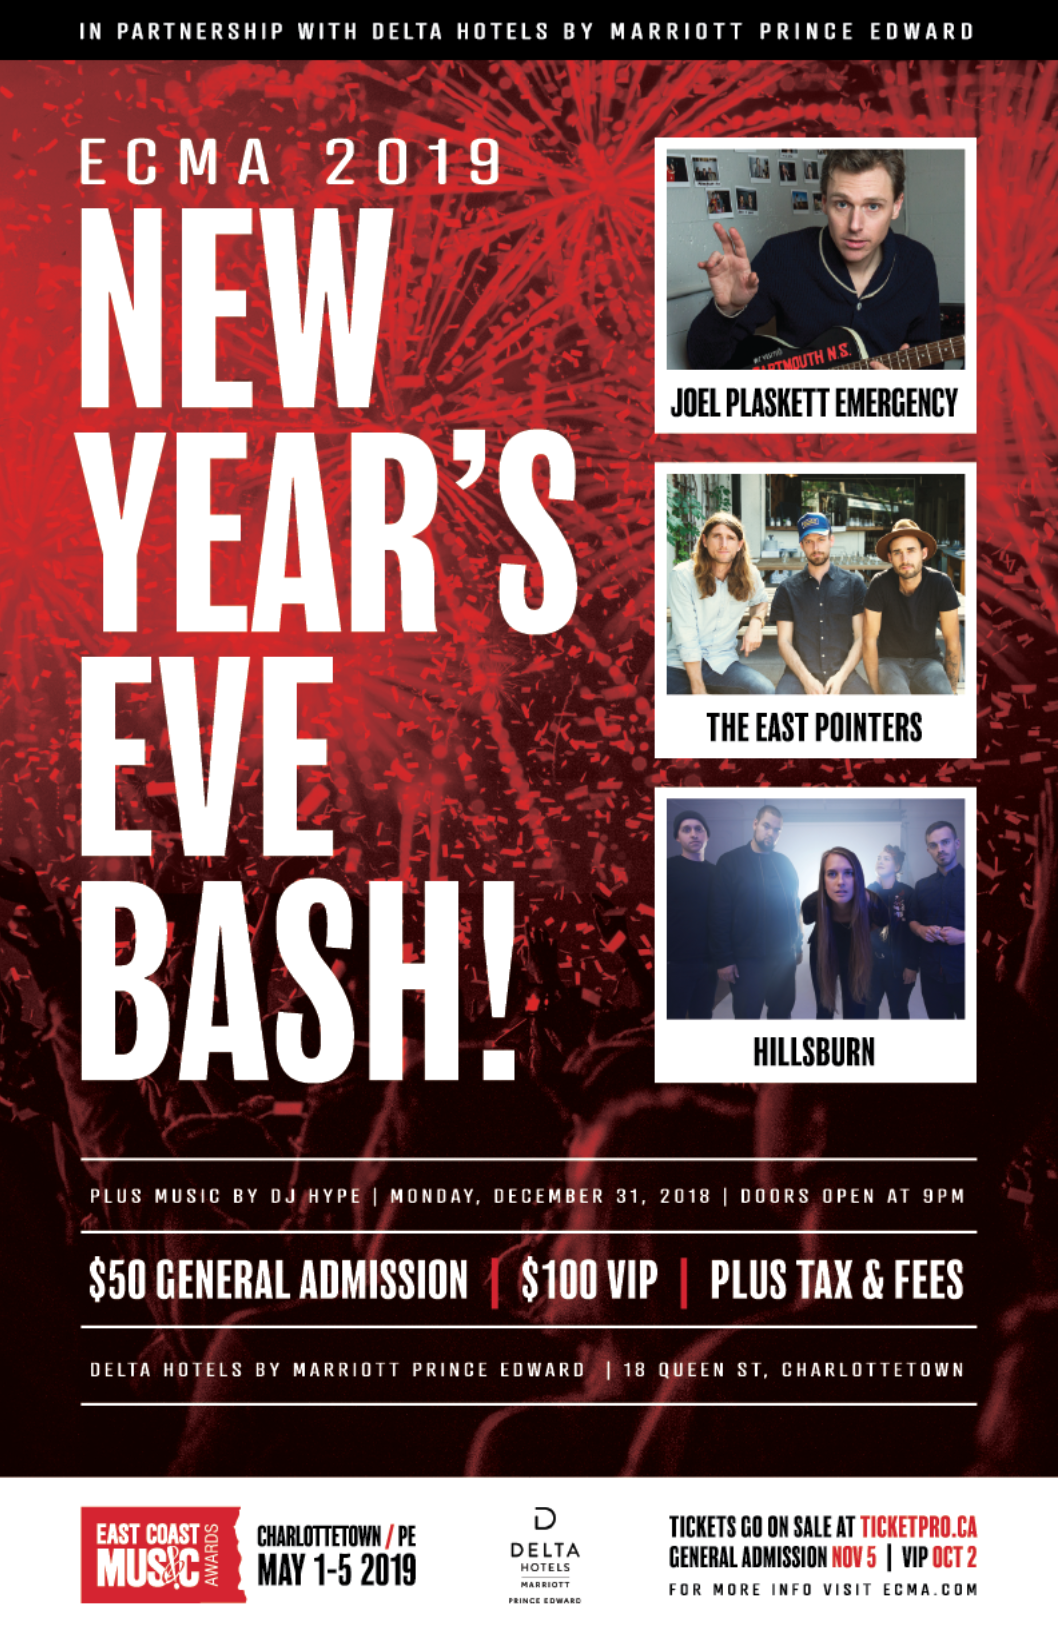 NEW Artist Added to ECMA 2019 New Year's Eve Bash Line-Up in Charlottetown, PEI